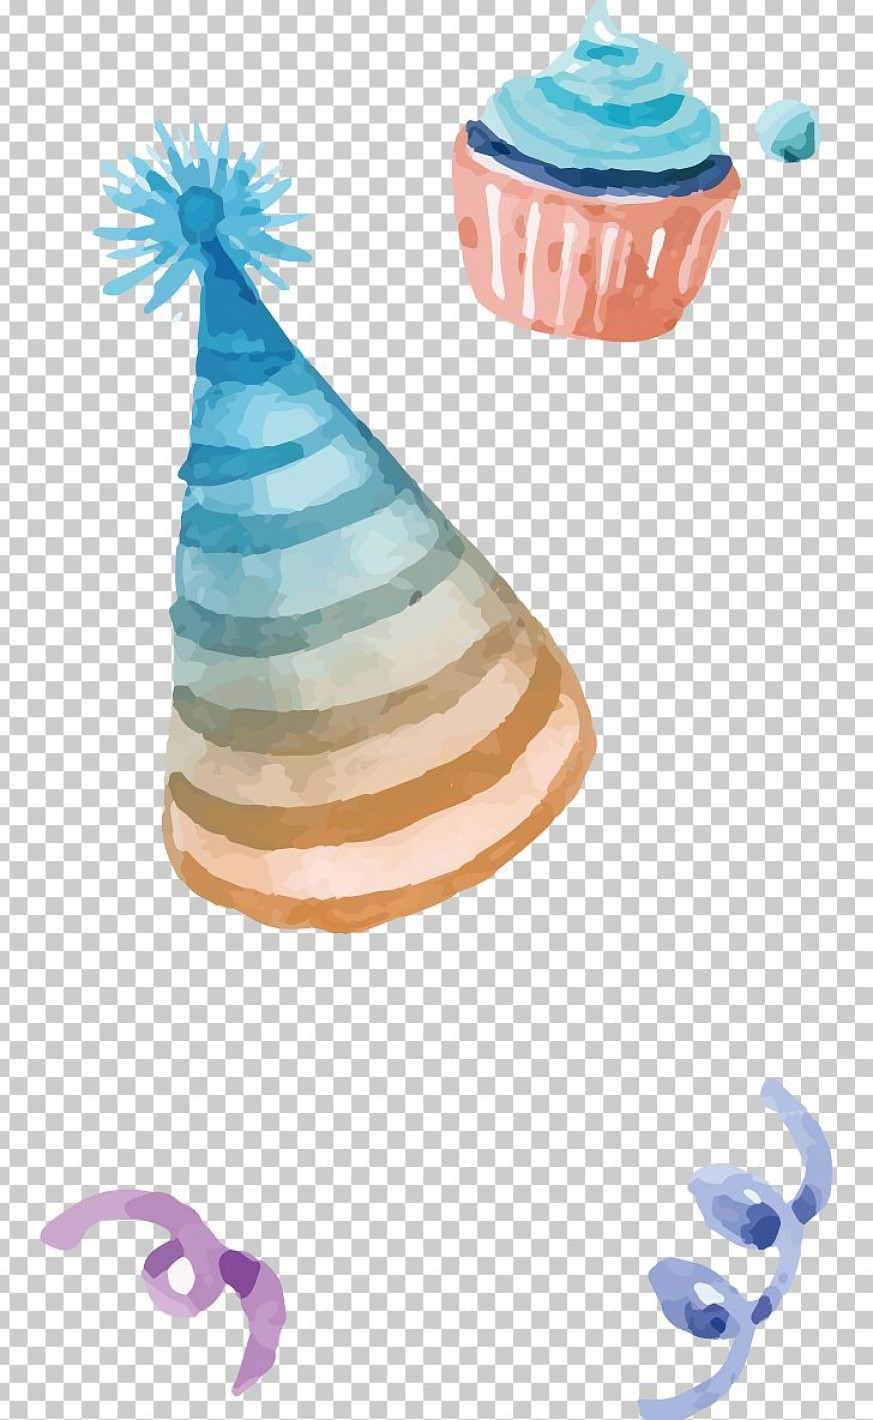 Teal Birthday Hat Vector: Party Hat Birthday Watercolor Painting Png